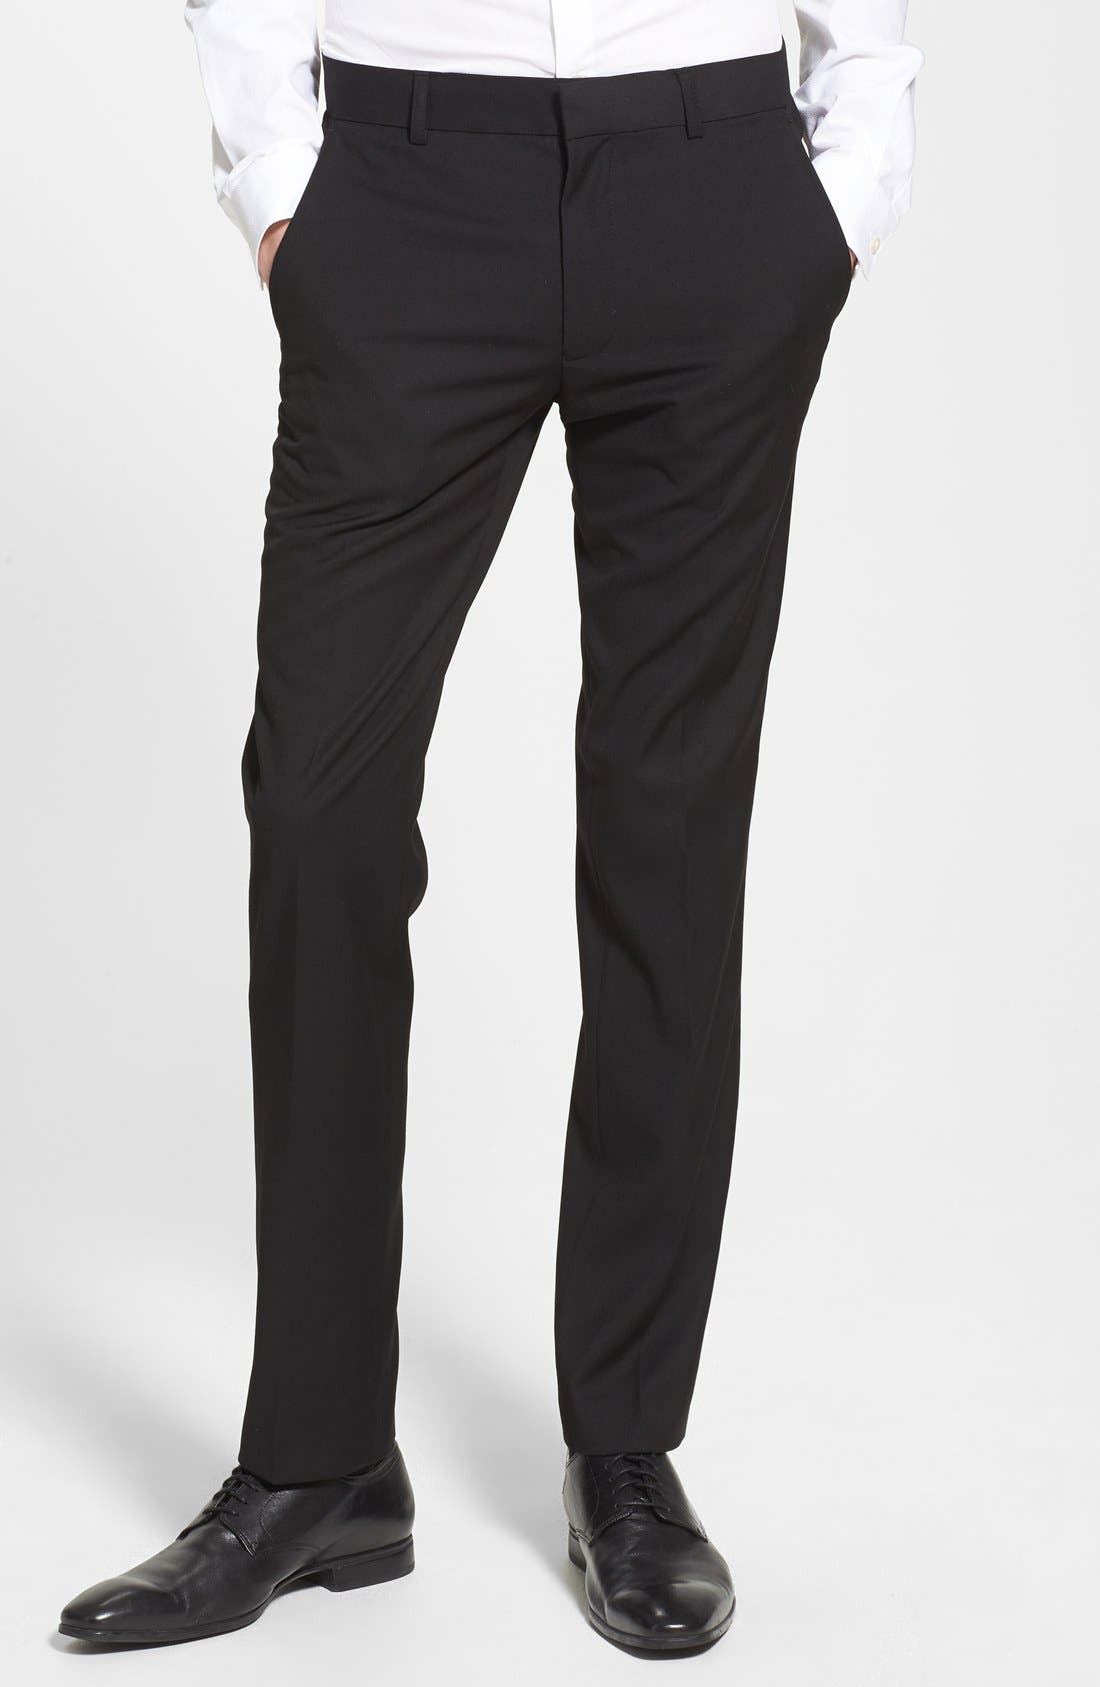 Black Textured Skinny Fit Flat Front Trousers,                             Main thumbnail 1, color,                             001